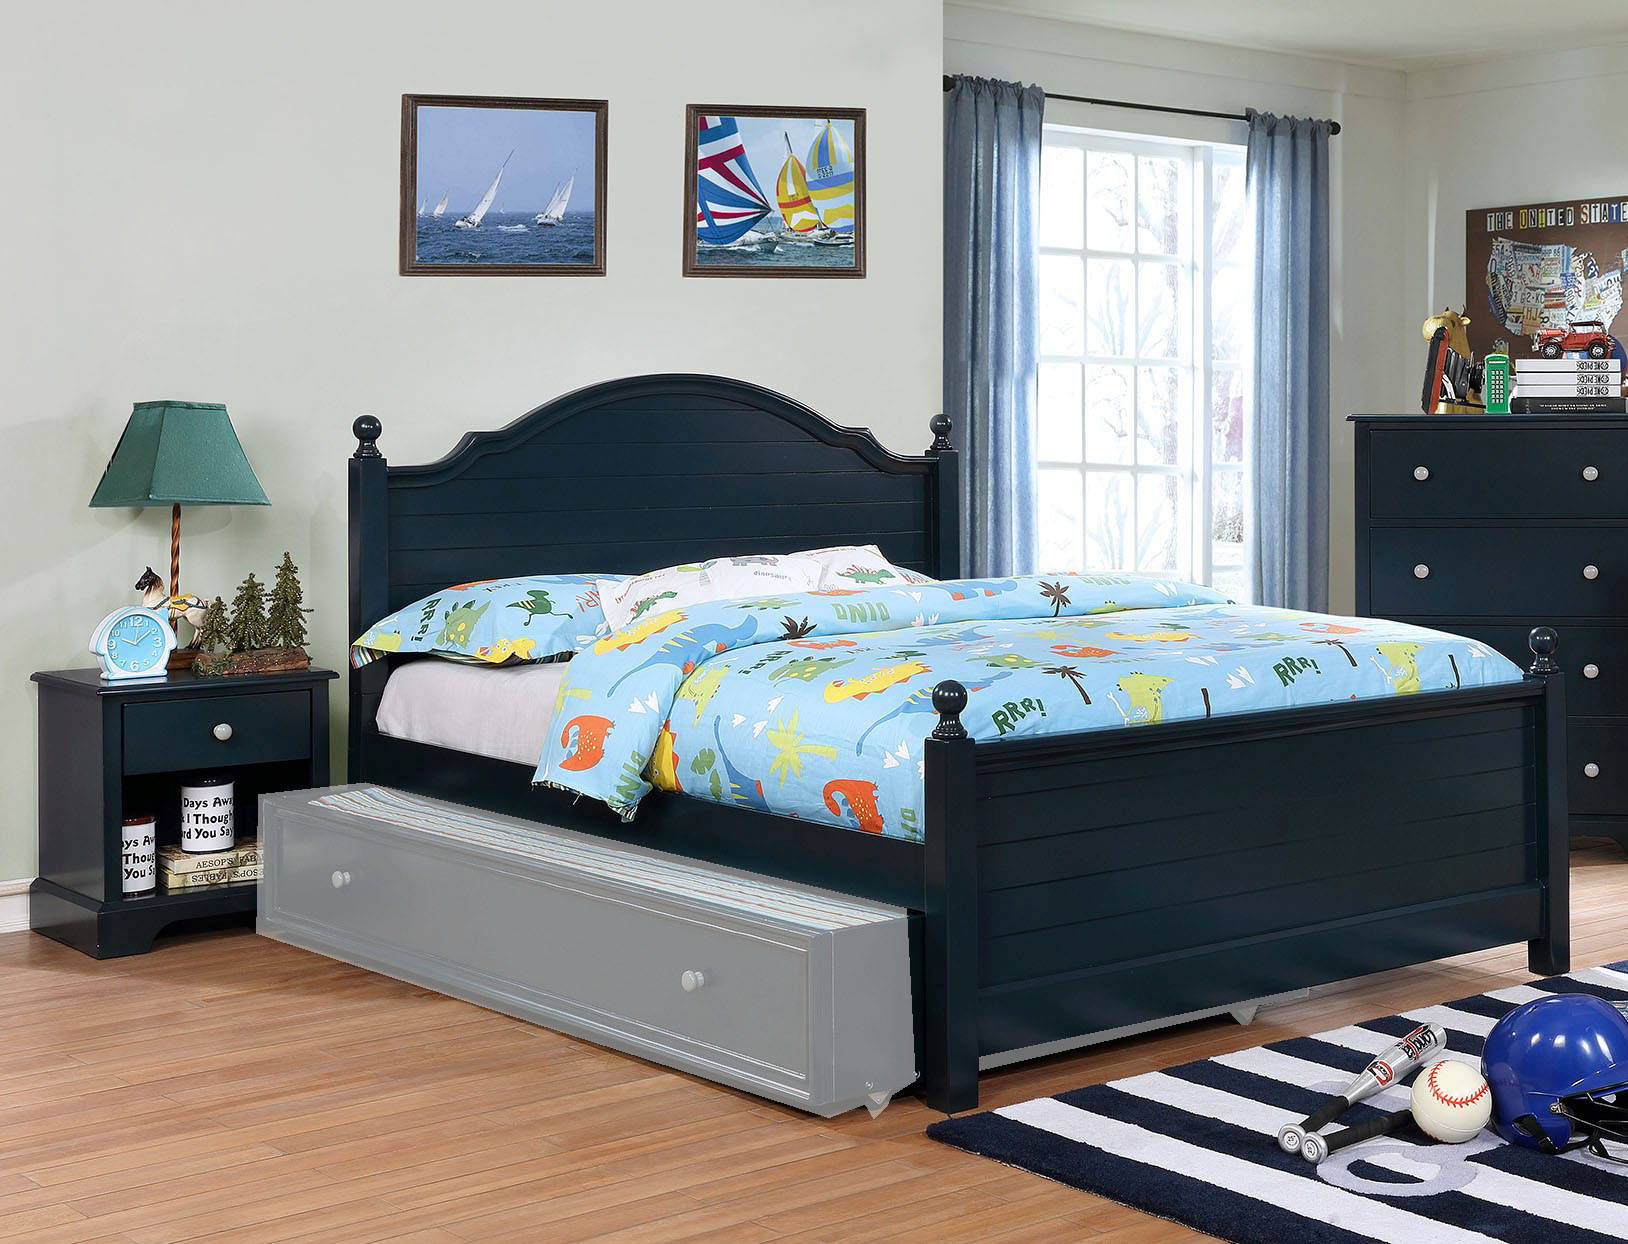 Furniture of America Diane Blue 2pc Kids Bedroom Set with Full Bed